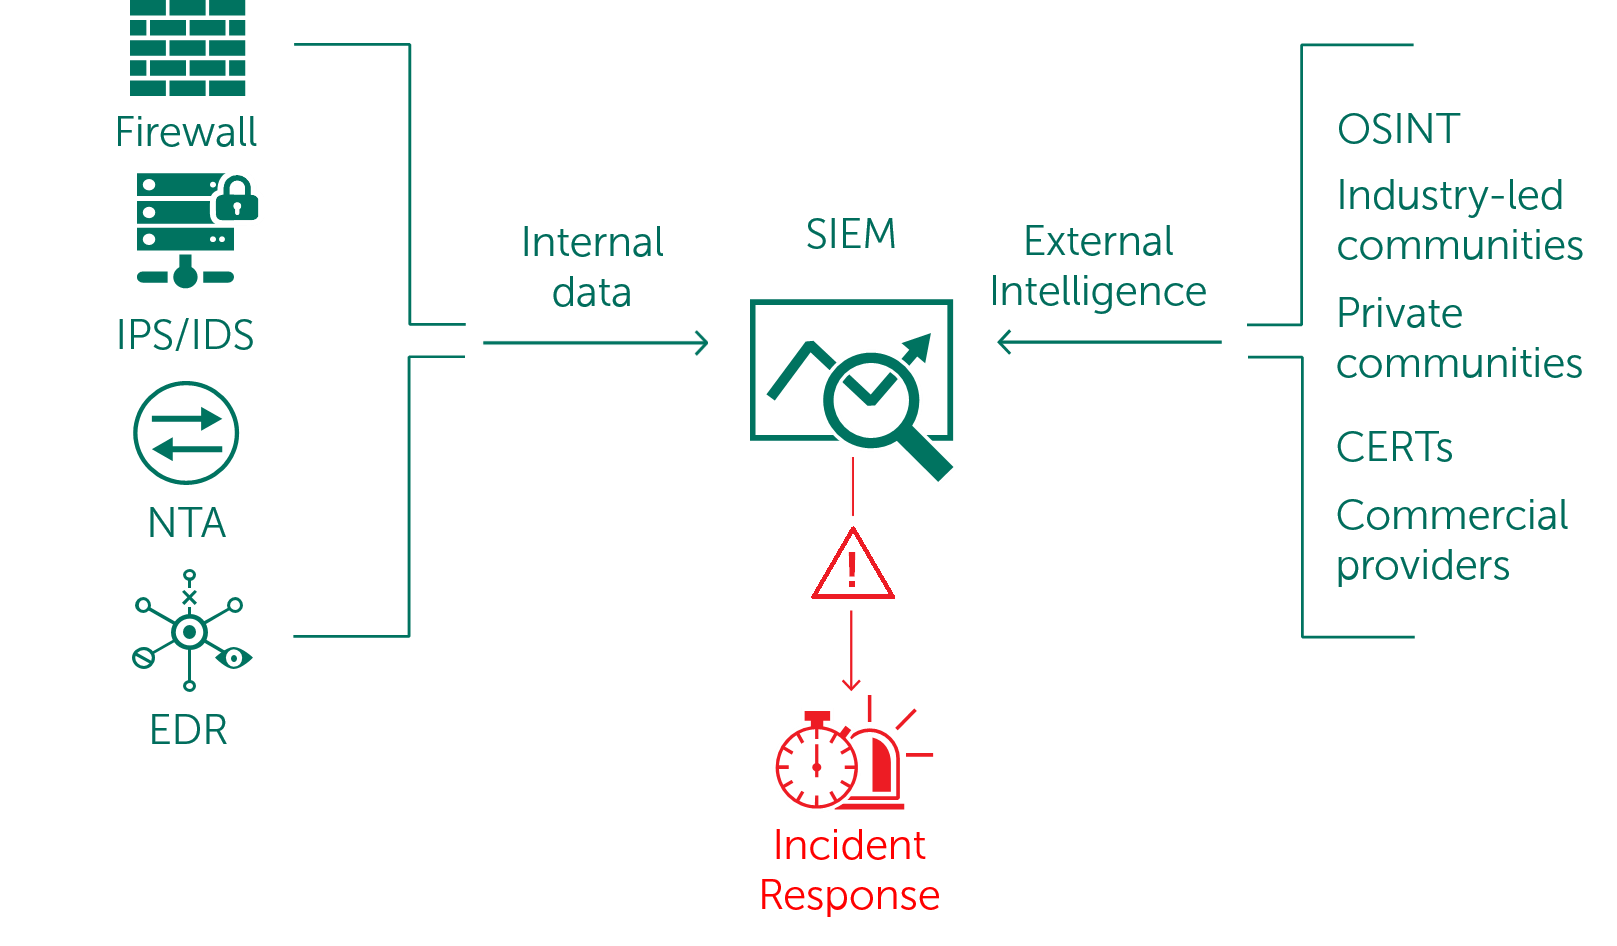 Operationalizing external threat intelligence